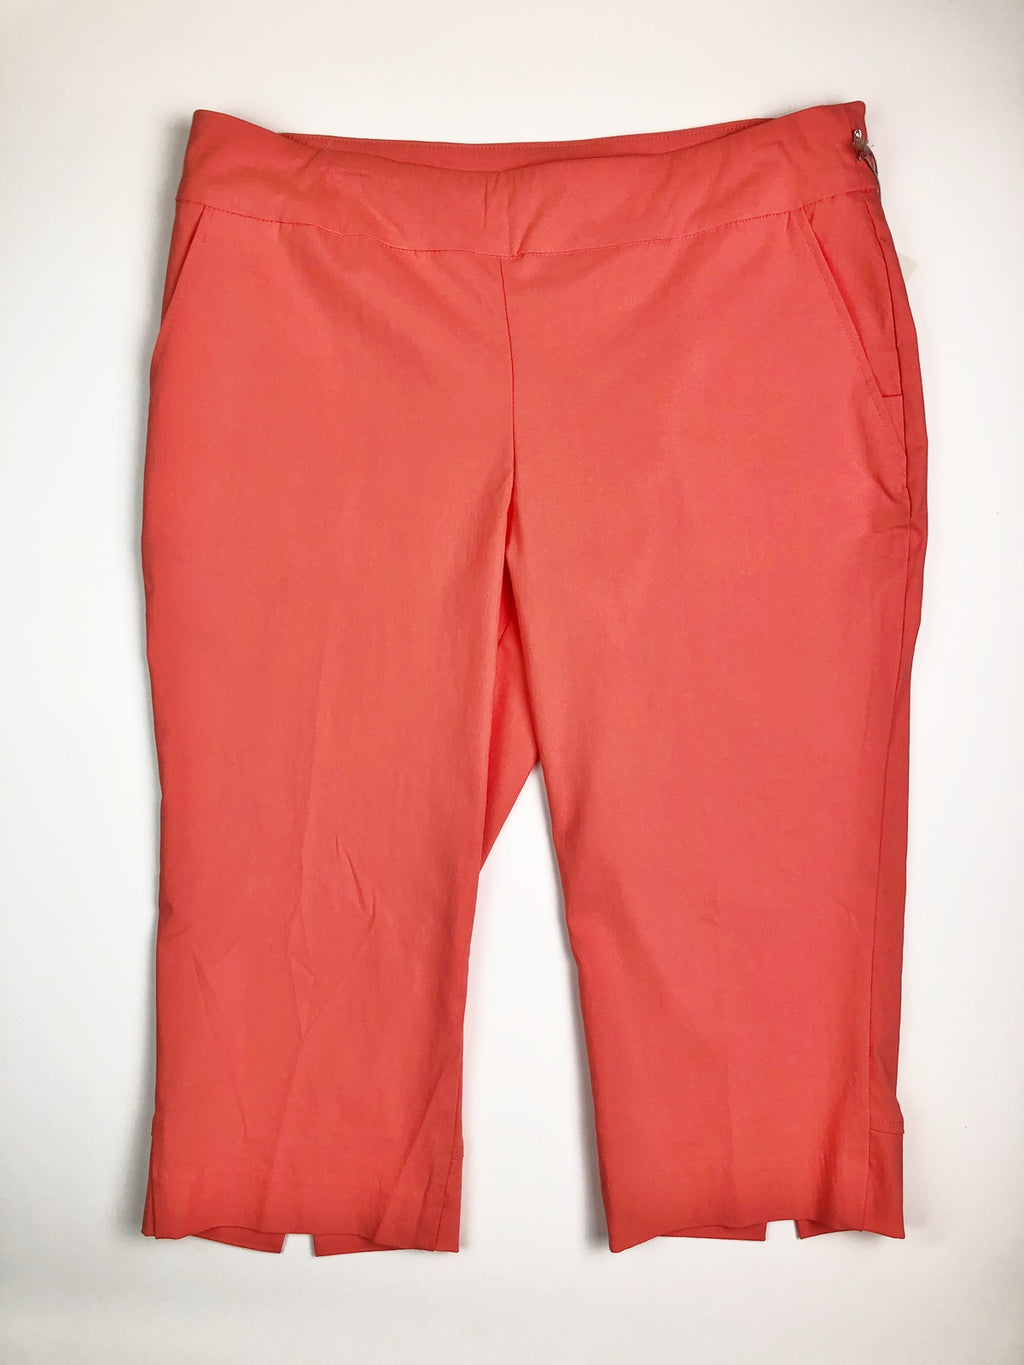 Bette & Court Jem Smooth Fit Capri - Coral | SPF 50